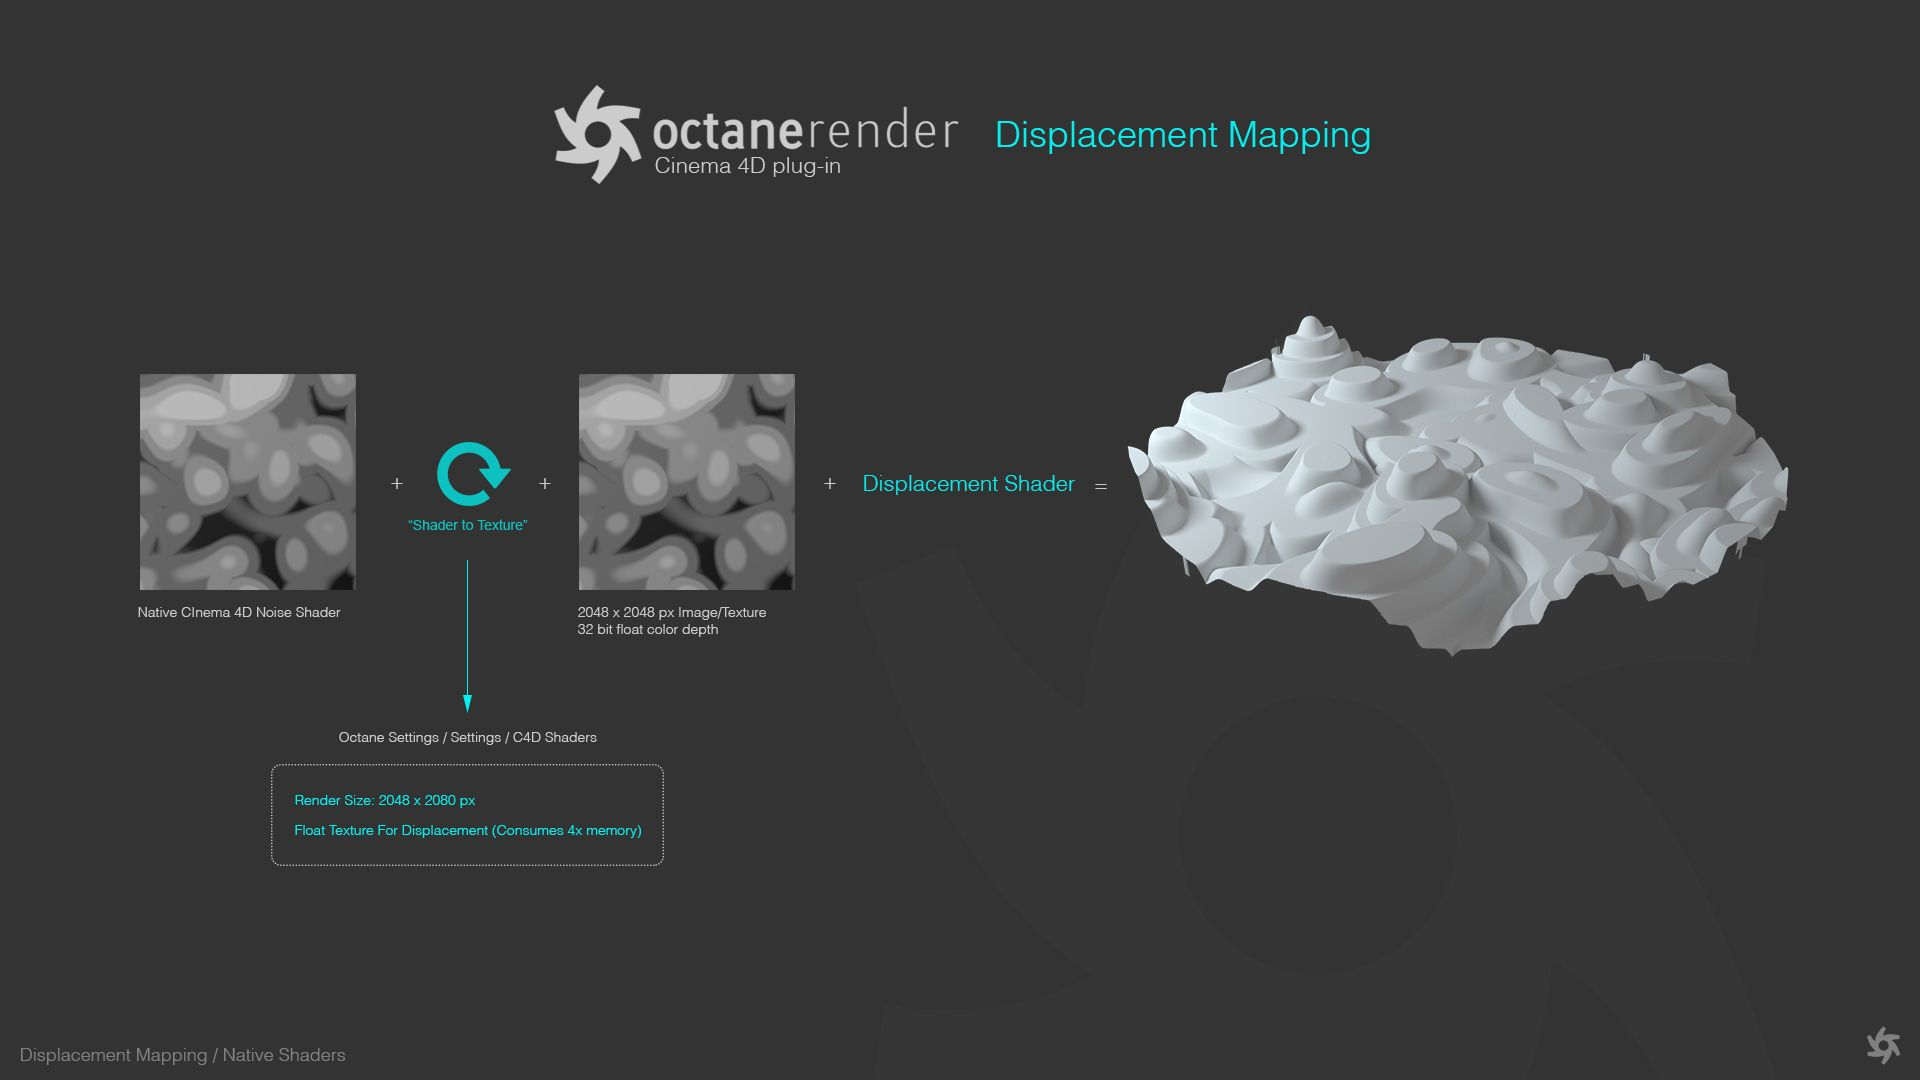 Displacement Mapping with Octane Render for Cinema 4D from